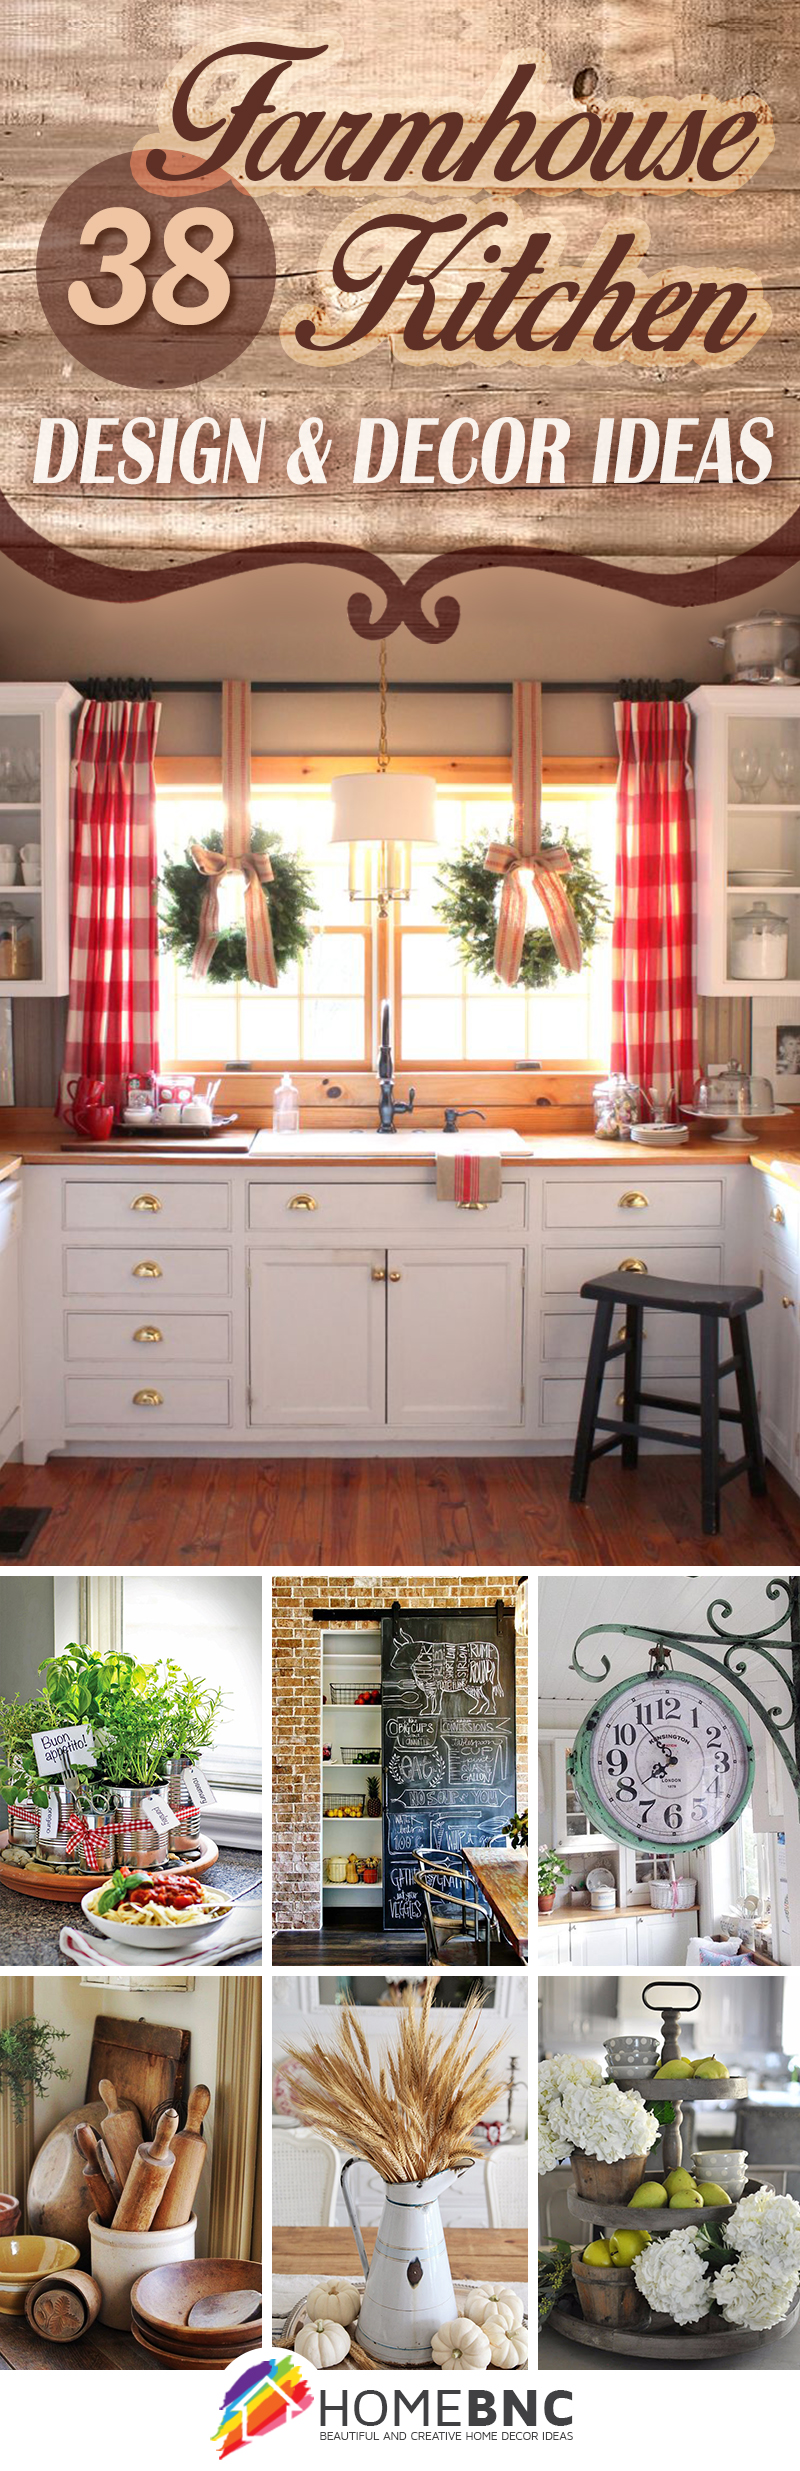 38 Best Farmhouse Kitchen Decor and Design Ideas for 2018 Rustic Kitchen Remodel Ideas Html on rustic wood kitchen ideas, rustic carpet ideas, rustic cabin kitchens, rustic kitchen tile ideas, rustic kitchen ceiling ideas, rustic kitchen makeover ideas, rustic red kitchen ideas, rustic kitchen decor ideas, rustic kitchen remodeling, vintage remodel ideas, rustic kitchen islands, rustic remodeled kitchens, rustic style kitchens, rustic kitchen cabinets, log cabin kitchen ideas, rustic outdoor kitchen ideas, rustic kitchen home, small rustic kitchen ideas, rustic kitchen shelf ideas, rustic kitchen cupboard ideas,